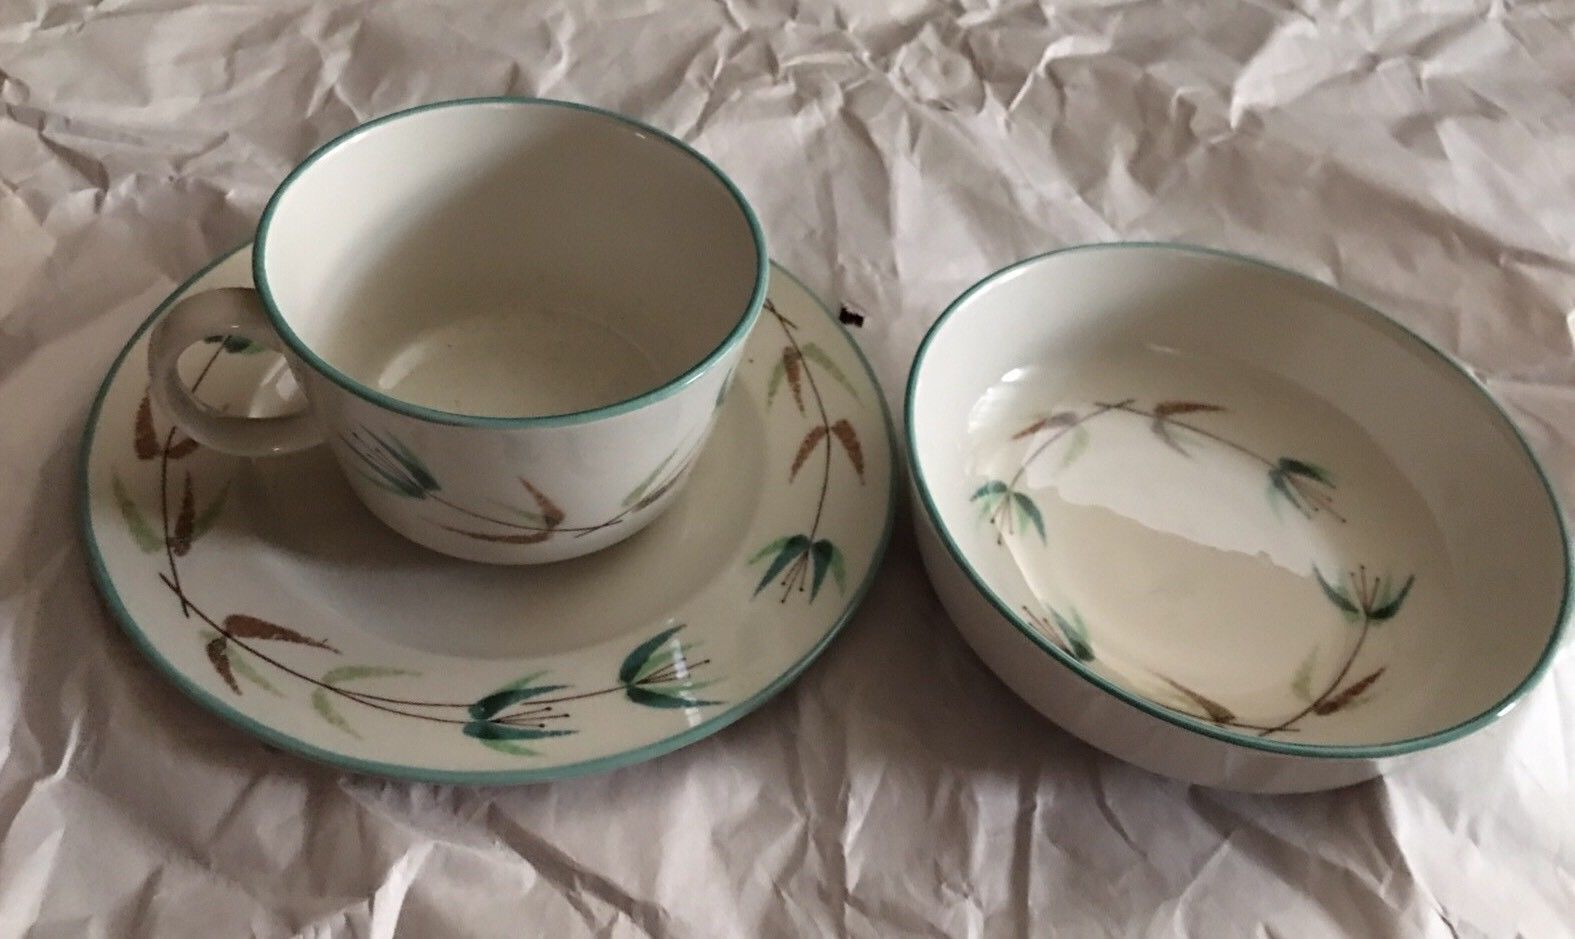 6 of 3 Piece Set Franciscan Fine Elegant CHINA Green leaves spring concept 1952 & 6 of 3 Piece Set Franciscan Fine Elegant and 50 similar items